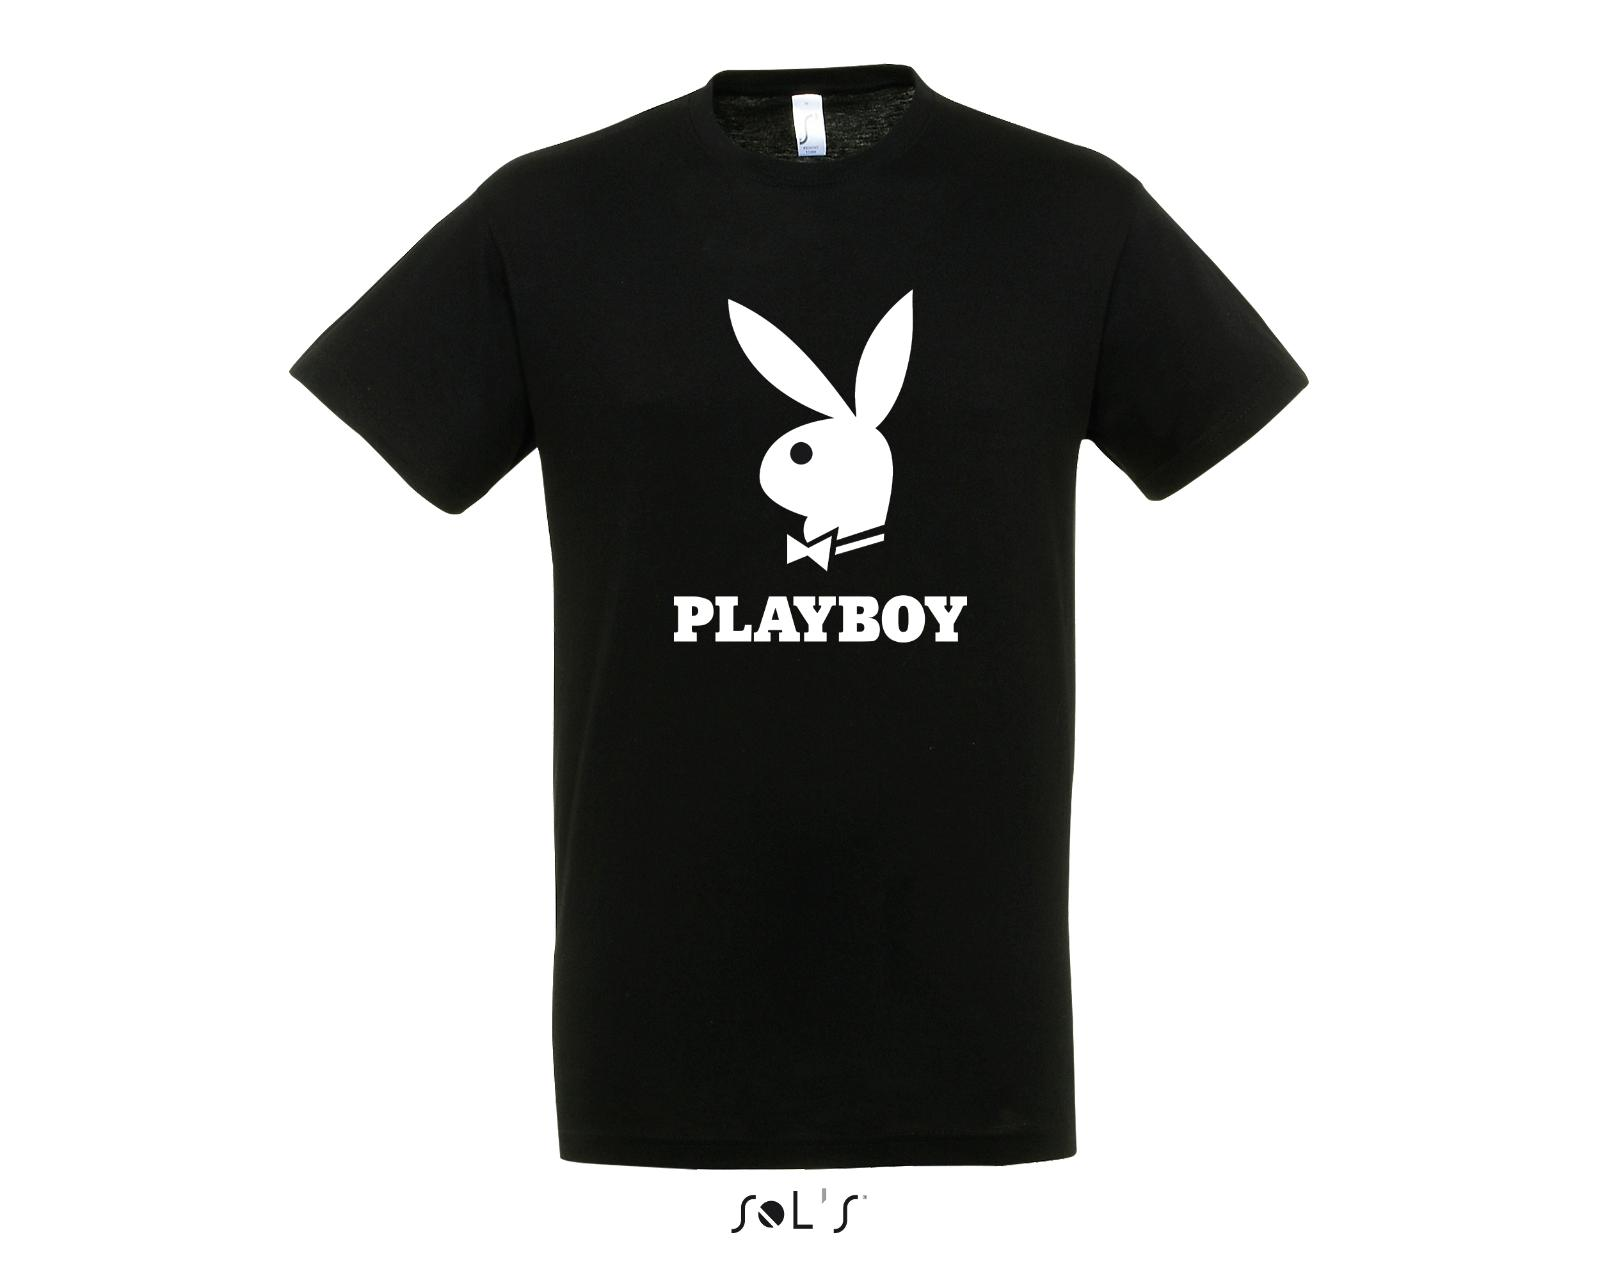 d7828fb0 PLAYBOY Logo T Shirt Cheap Best Price Rock N Roll Party Huw Hefner Bunny  Funny Unisex Casual Tee Top Random Graphic Tees Quirky T Shirt Designs From  ...